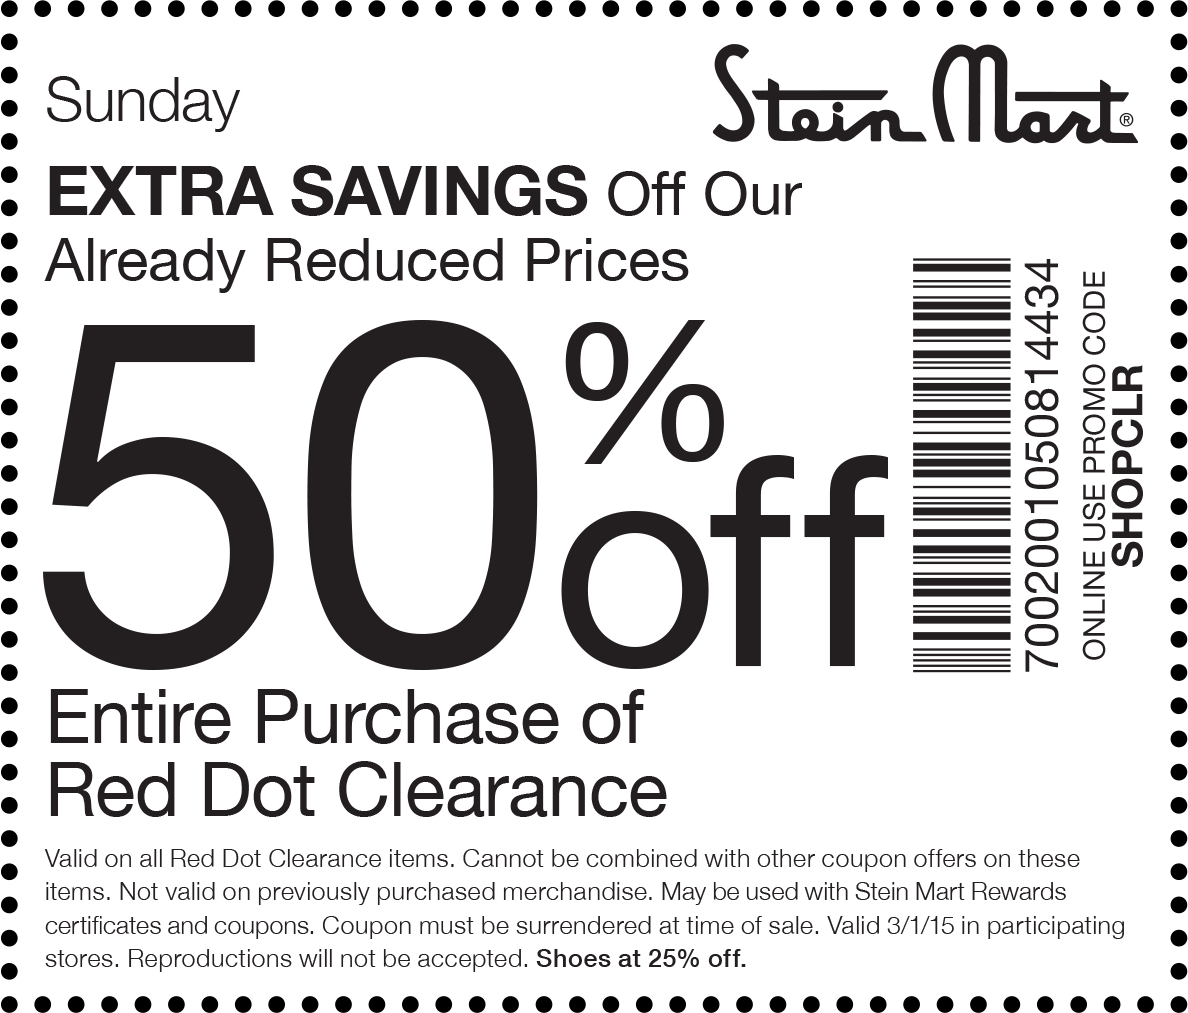 Stein Mart Coupon December 2017 Extra 50% off red dot clearance today at Stein Mart, or online via promo code SHOPCLR